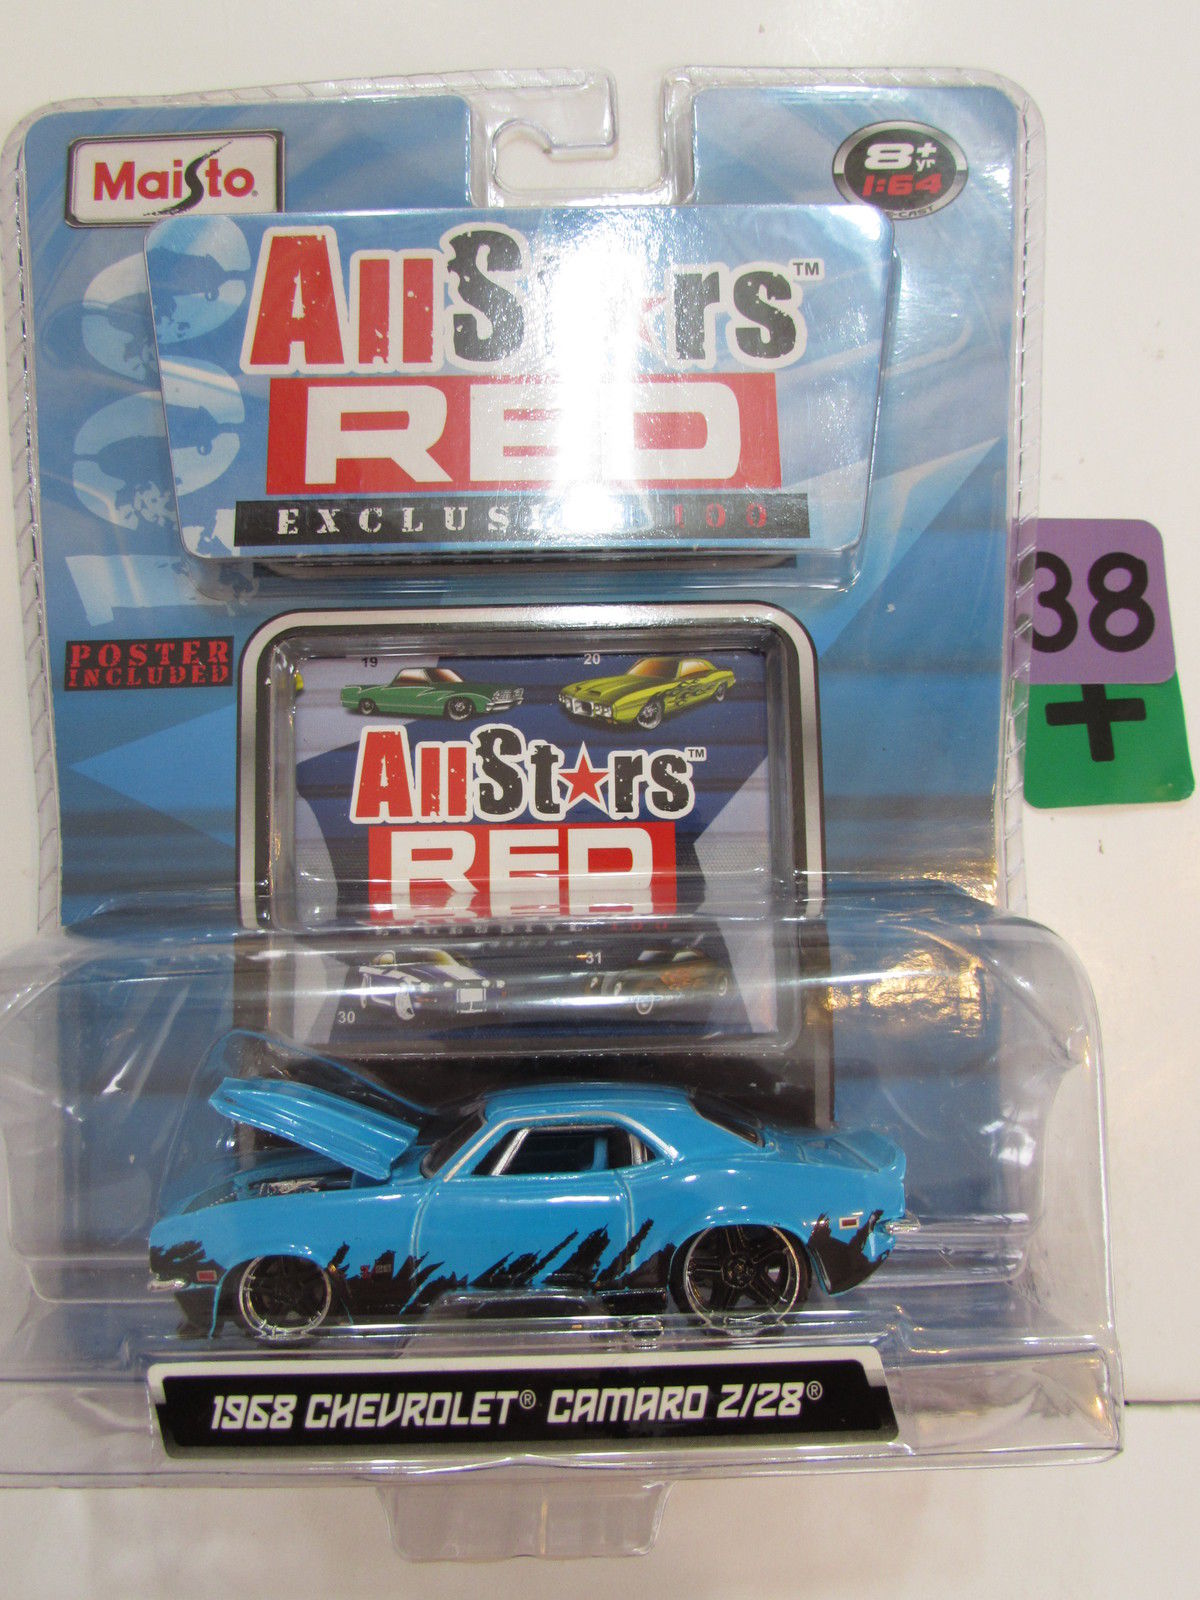 MAISTO ALL STARS RED EXCLUSIVE 100 - 1968 CHEVROLET CAMARO Z/28